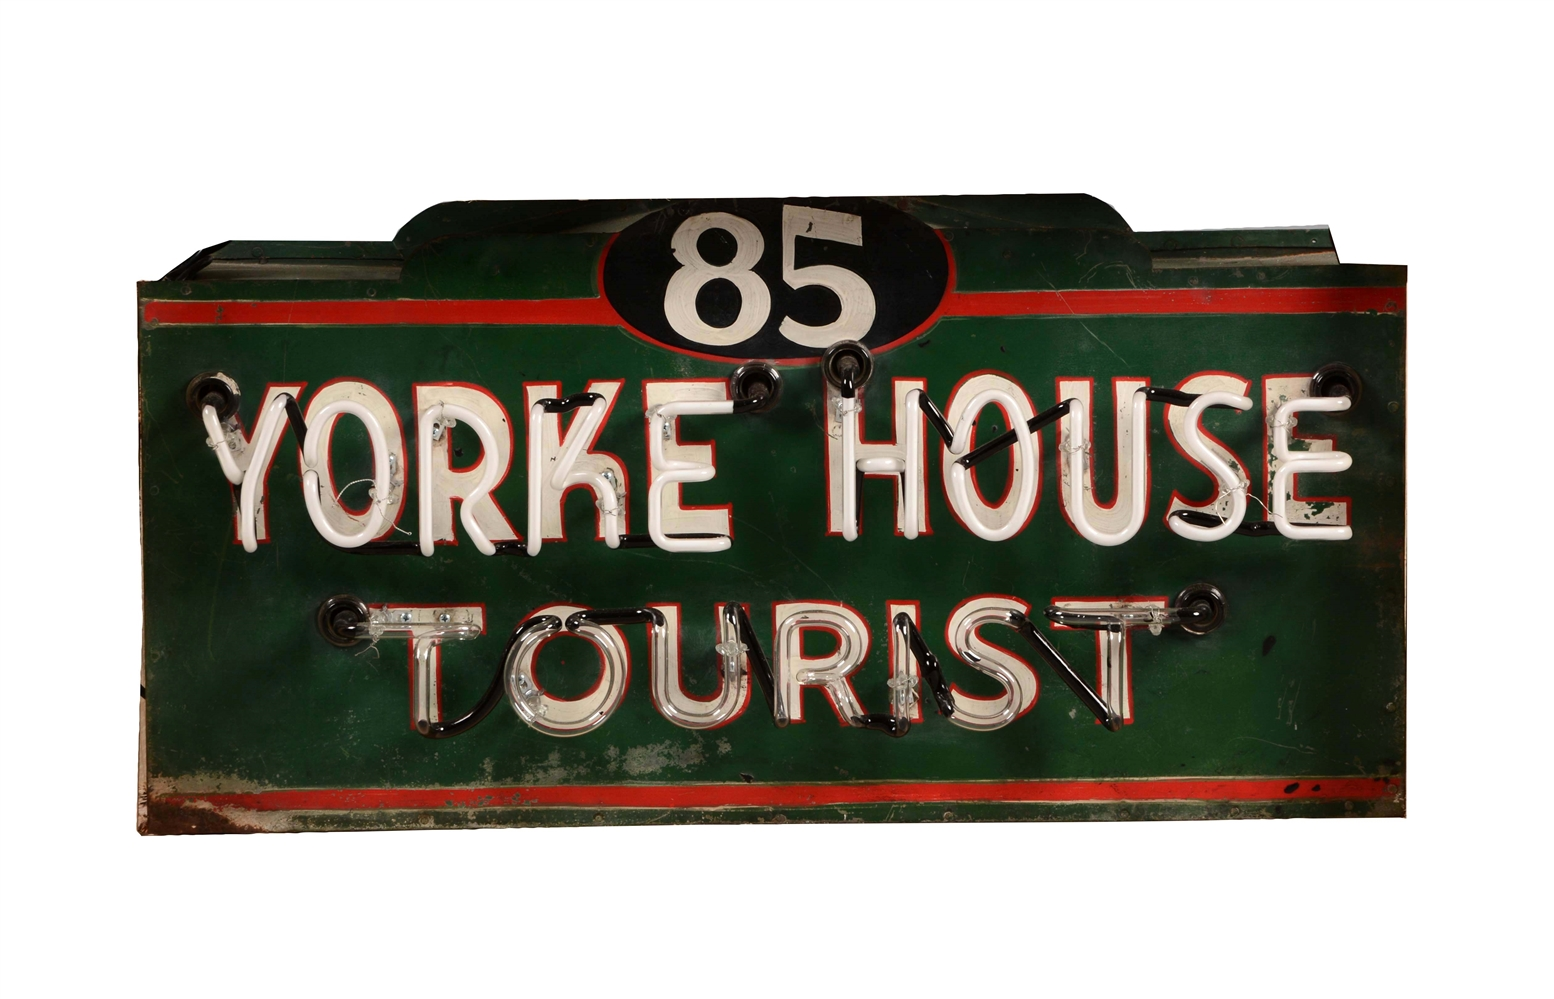 Yorke House Tourist Tin Neon Sign on Original Can.